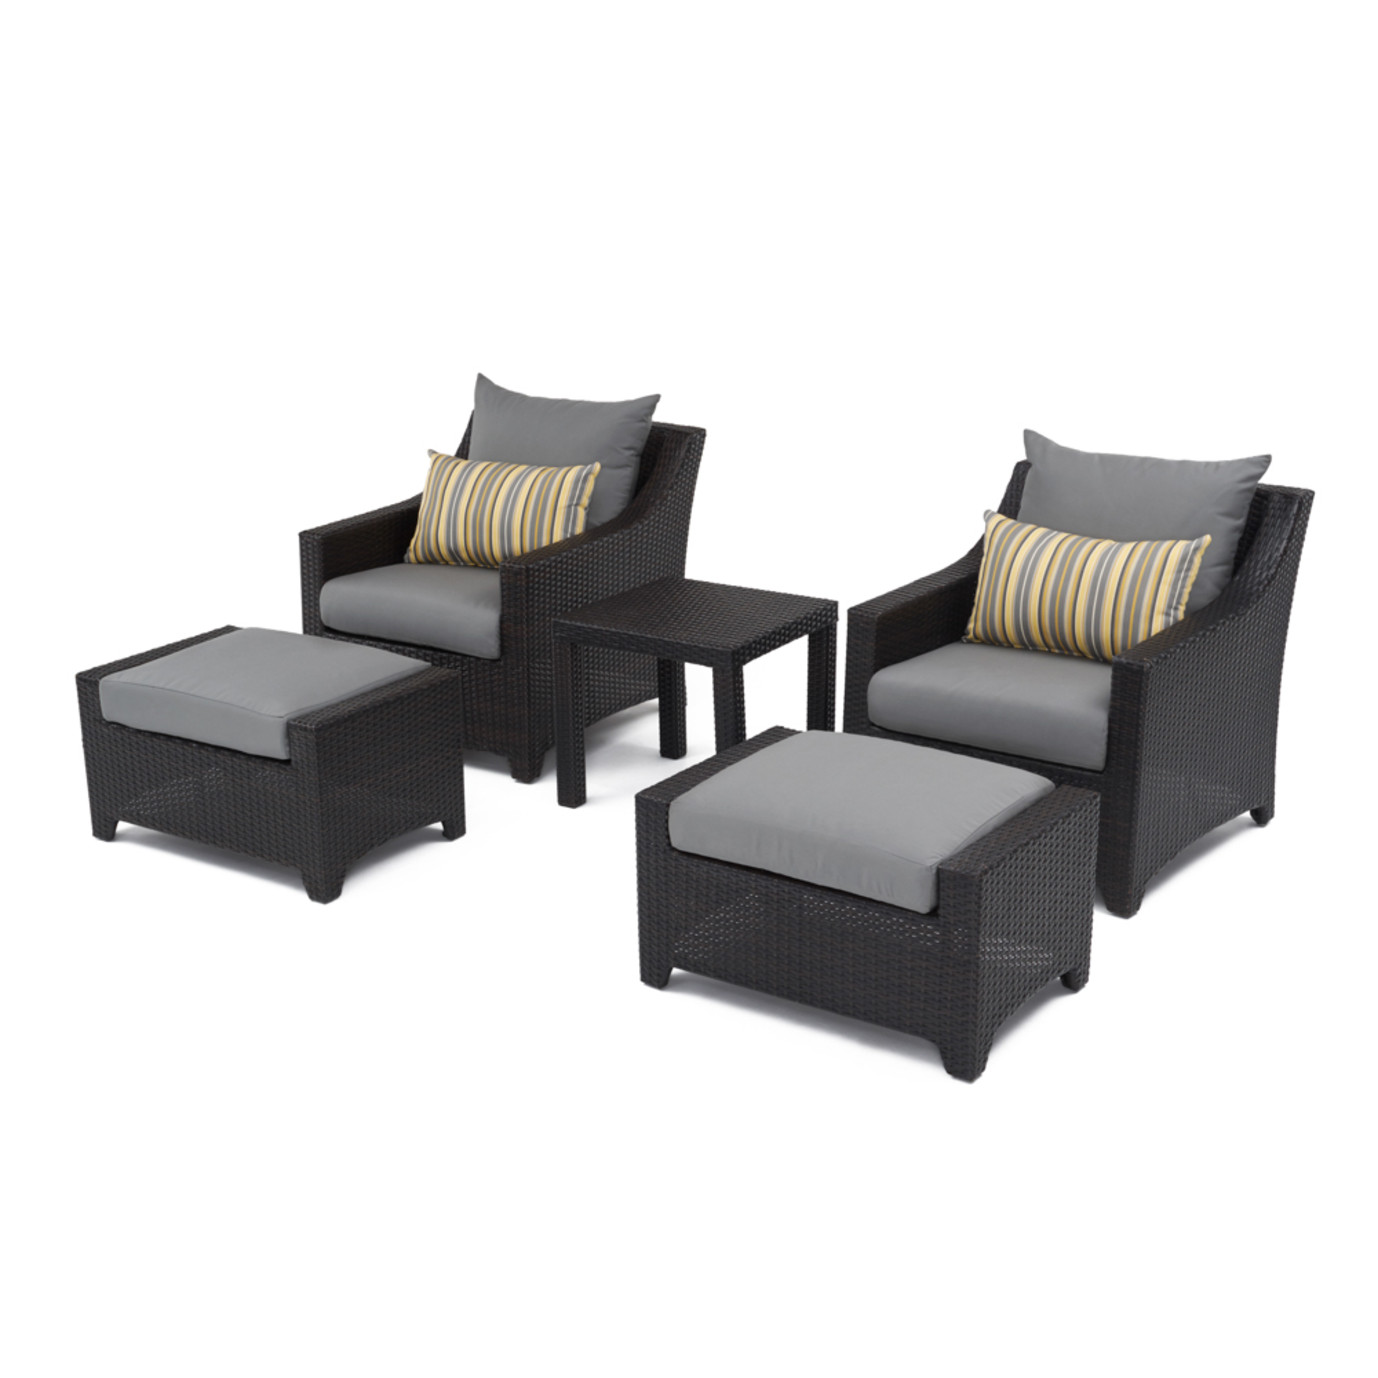 Deco™ 5pc Club Chair and Ottoman Set - Charcoal Gray